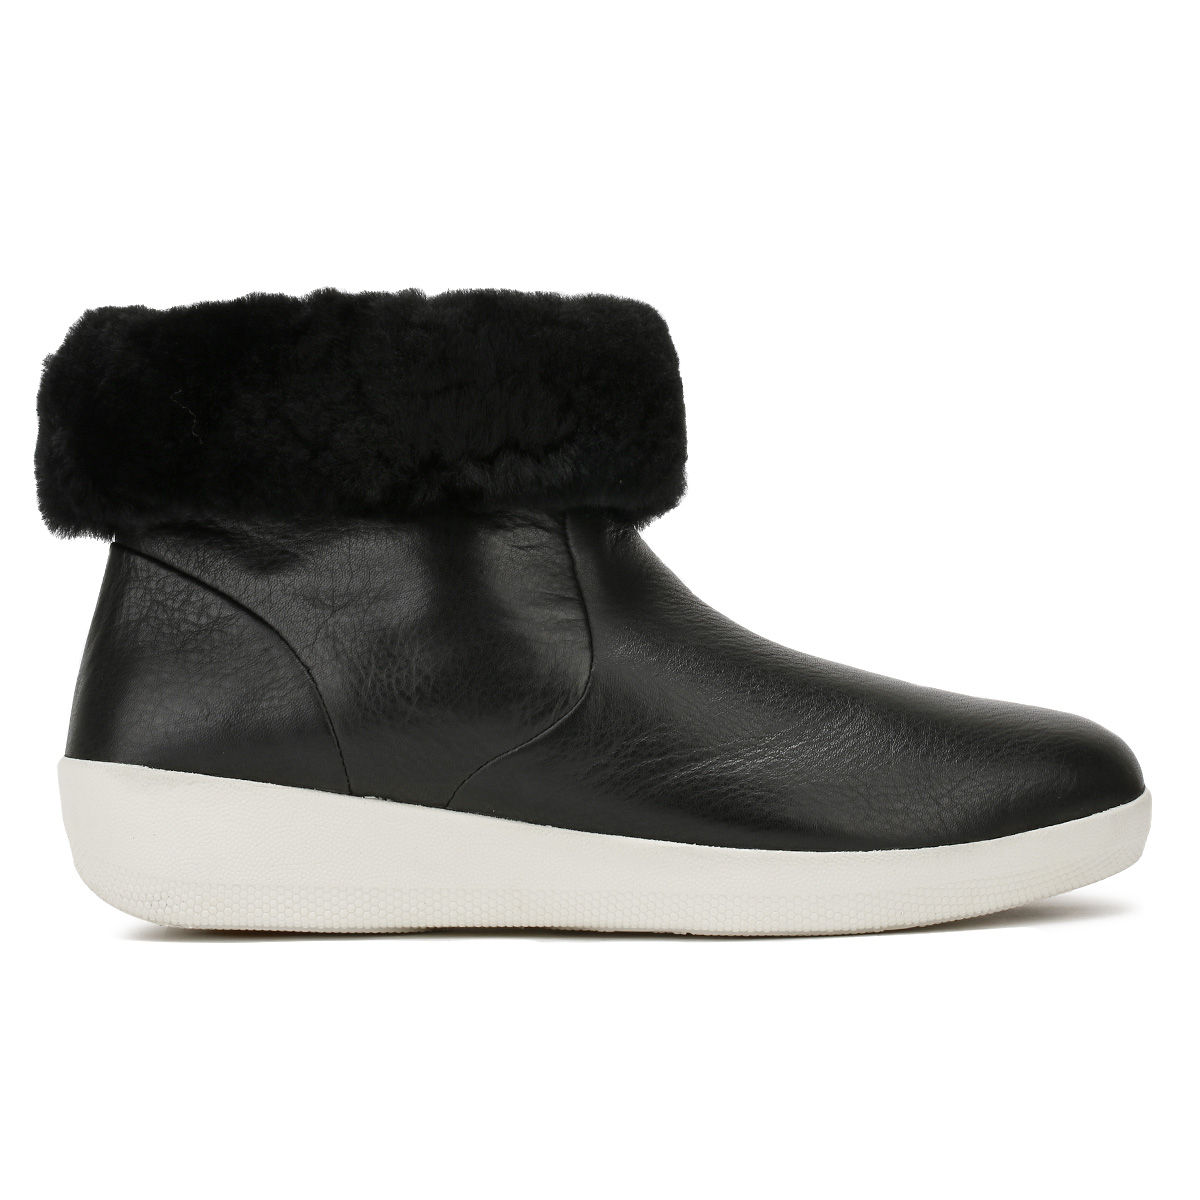 71891290efdb FitFlop Skatebootie - Black Leather Womens BOOTS 4 UK